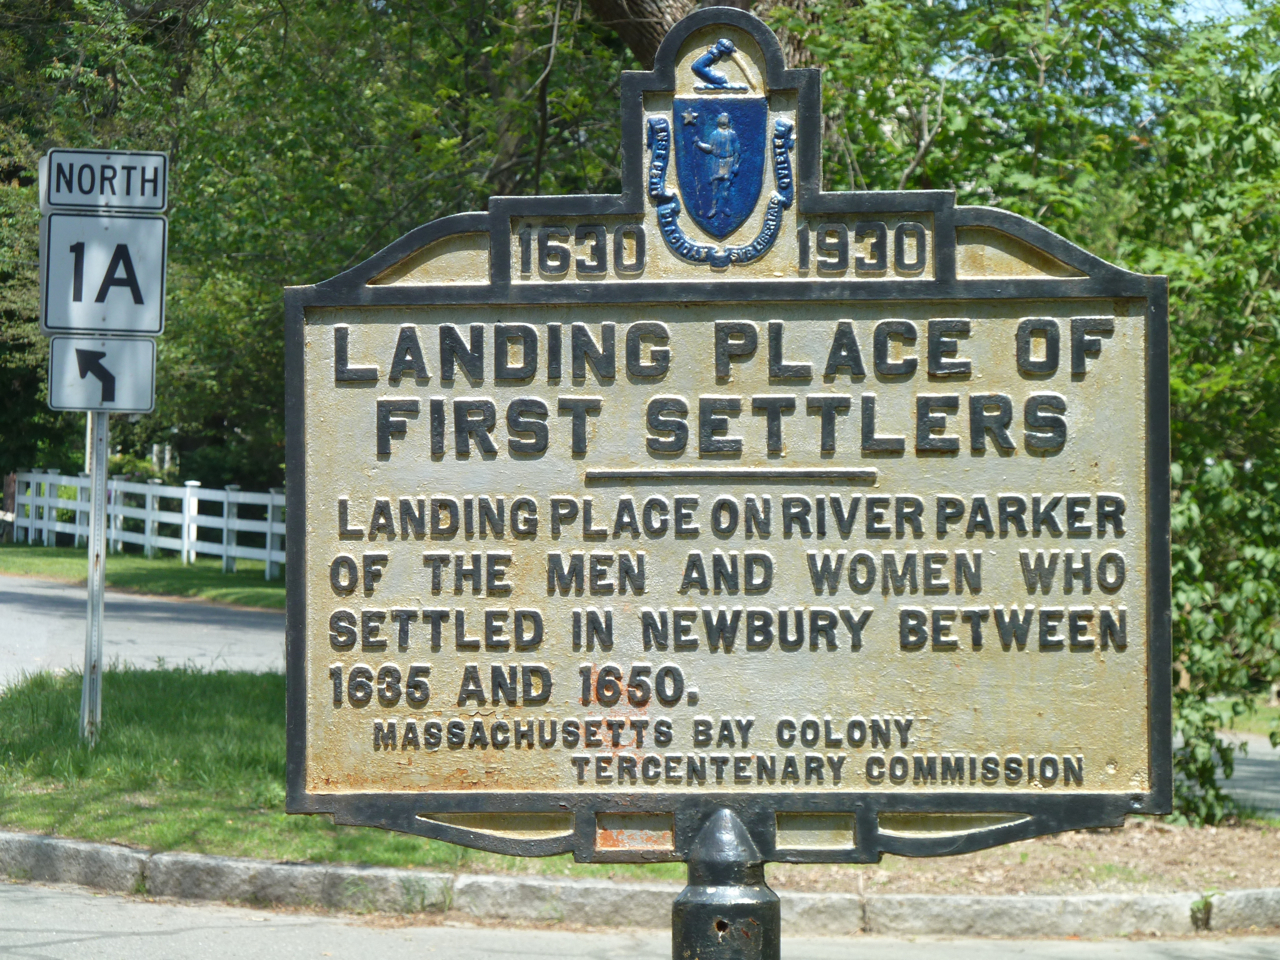 Landing place of the first settlers of Newbury